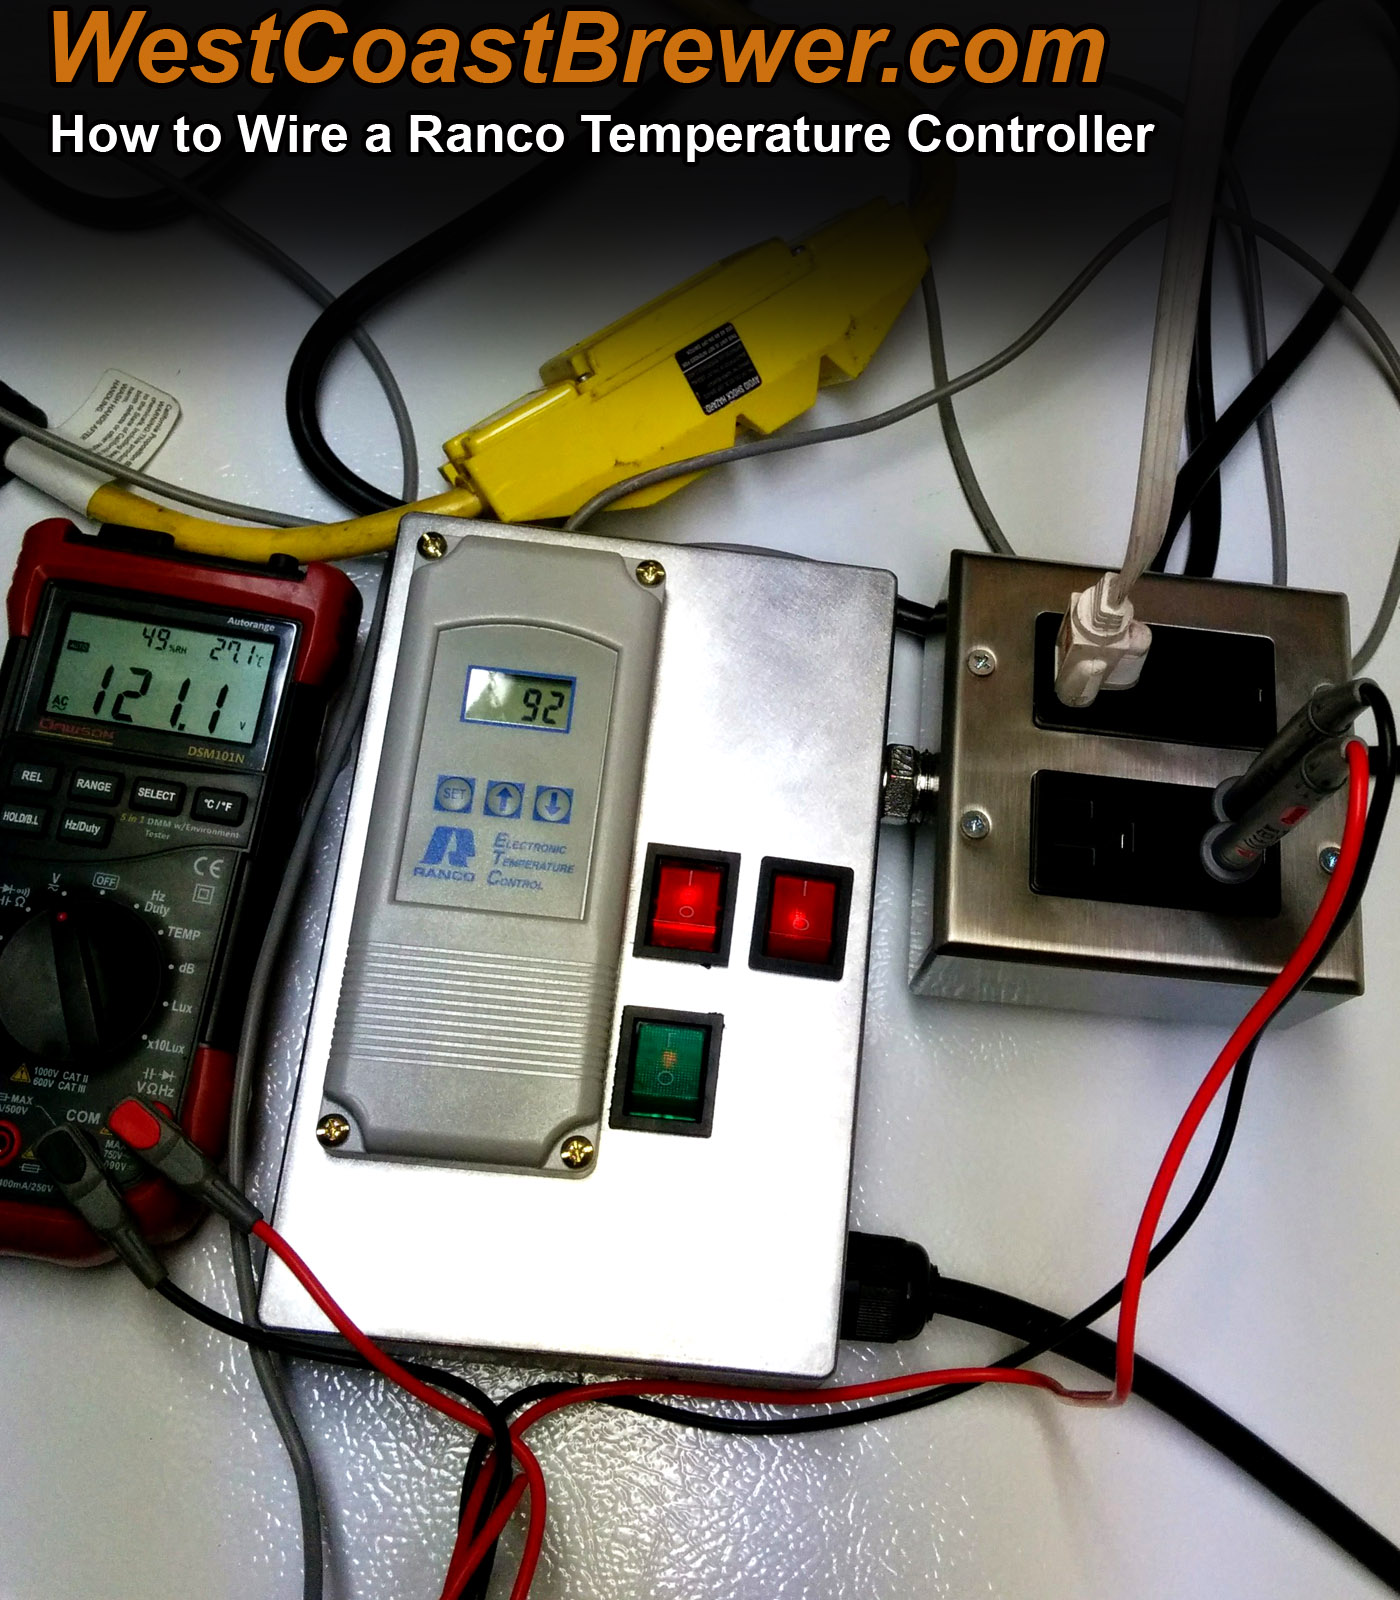 How To Wire A Ranco Digital Temperature Controller V - Ranco temperature controller wiring diagram